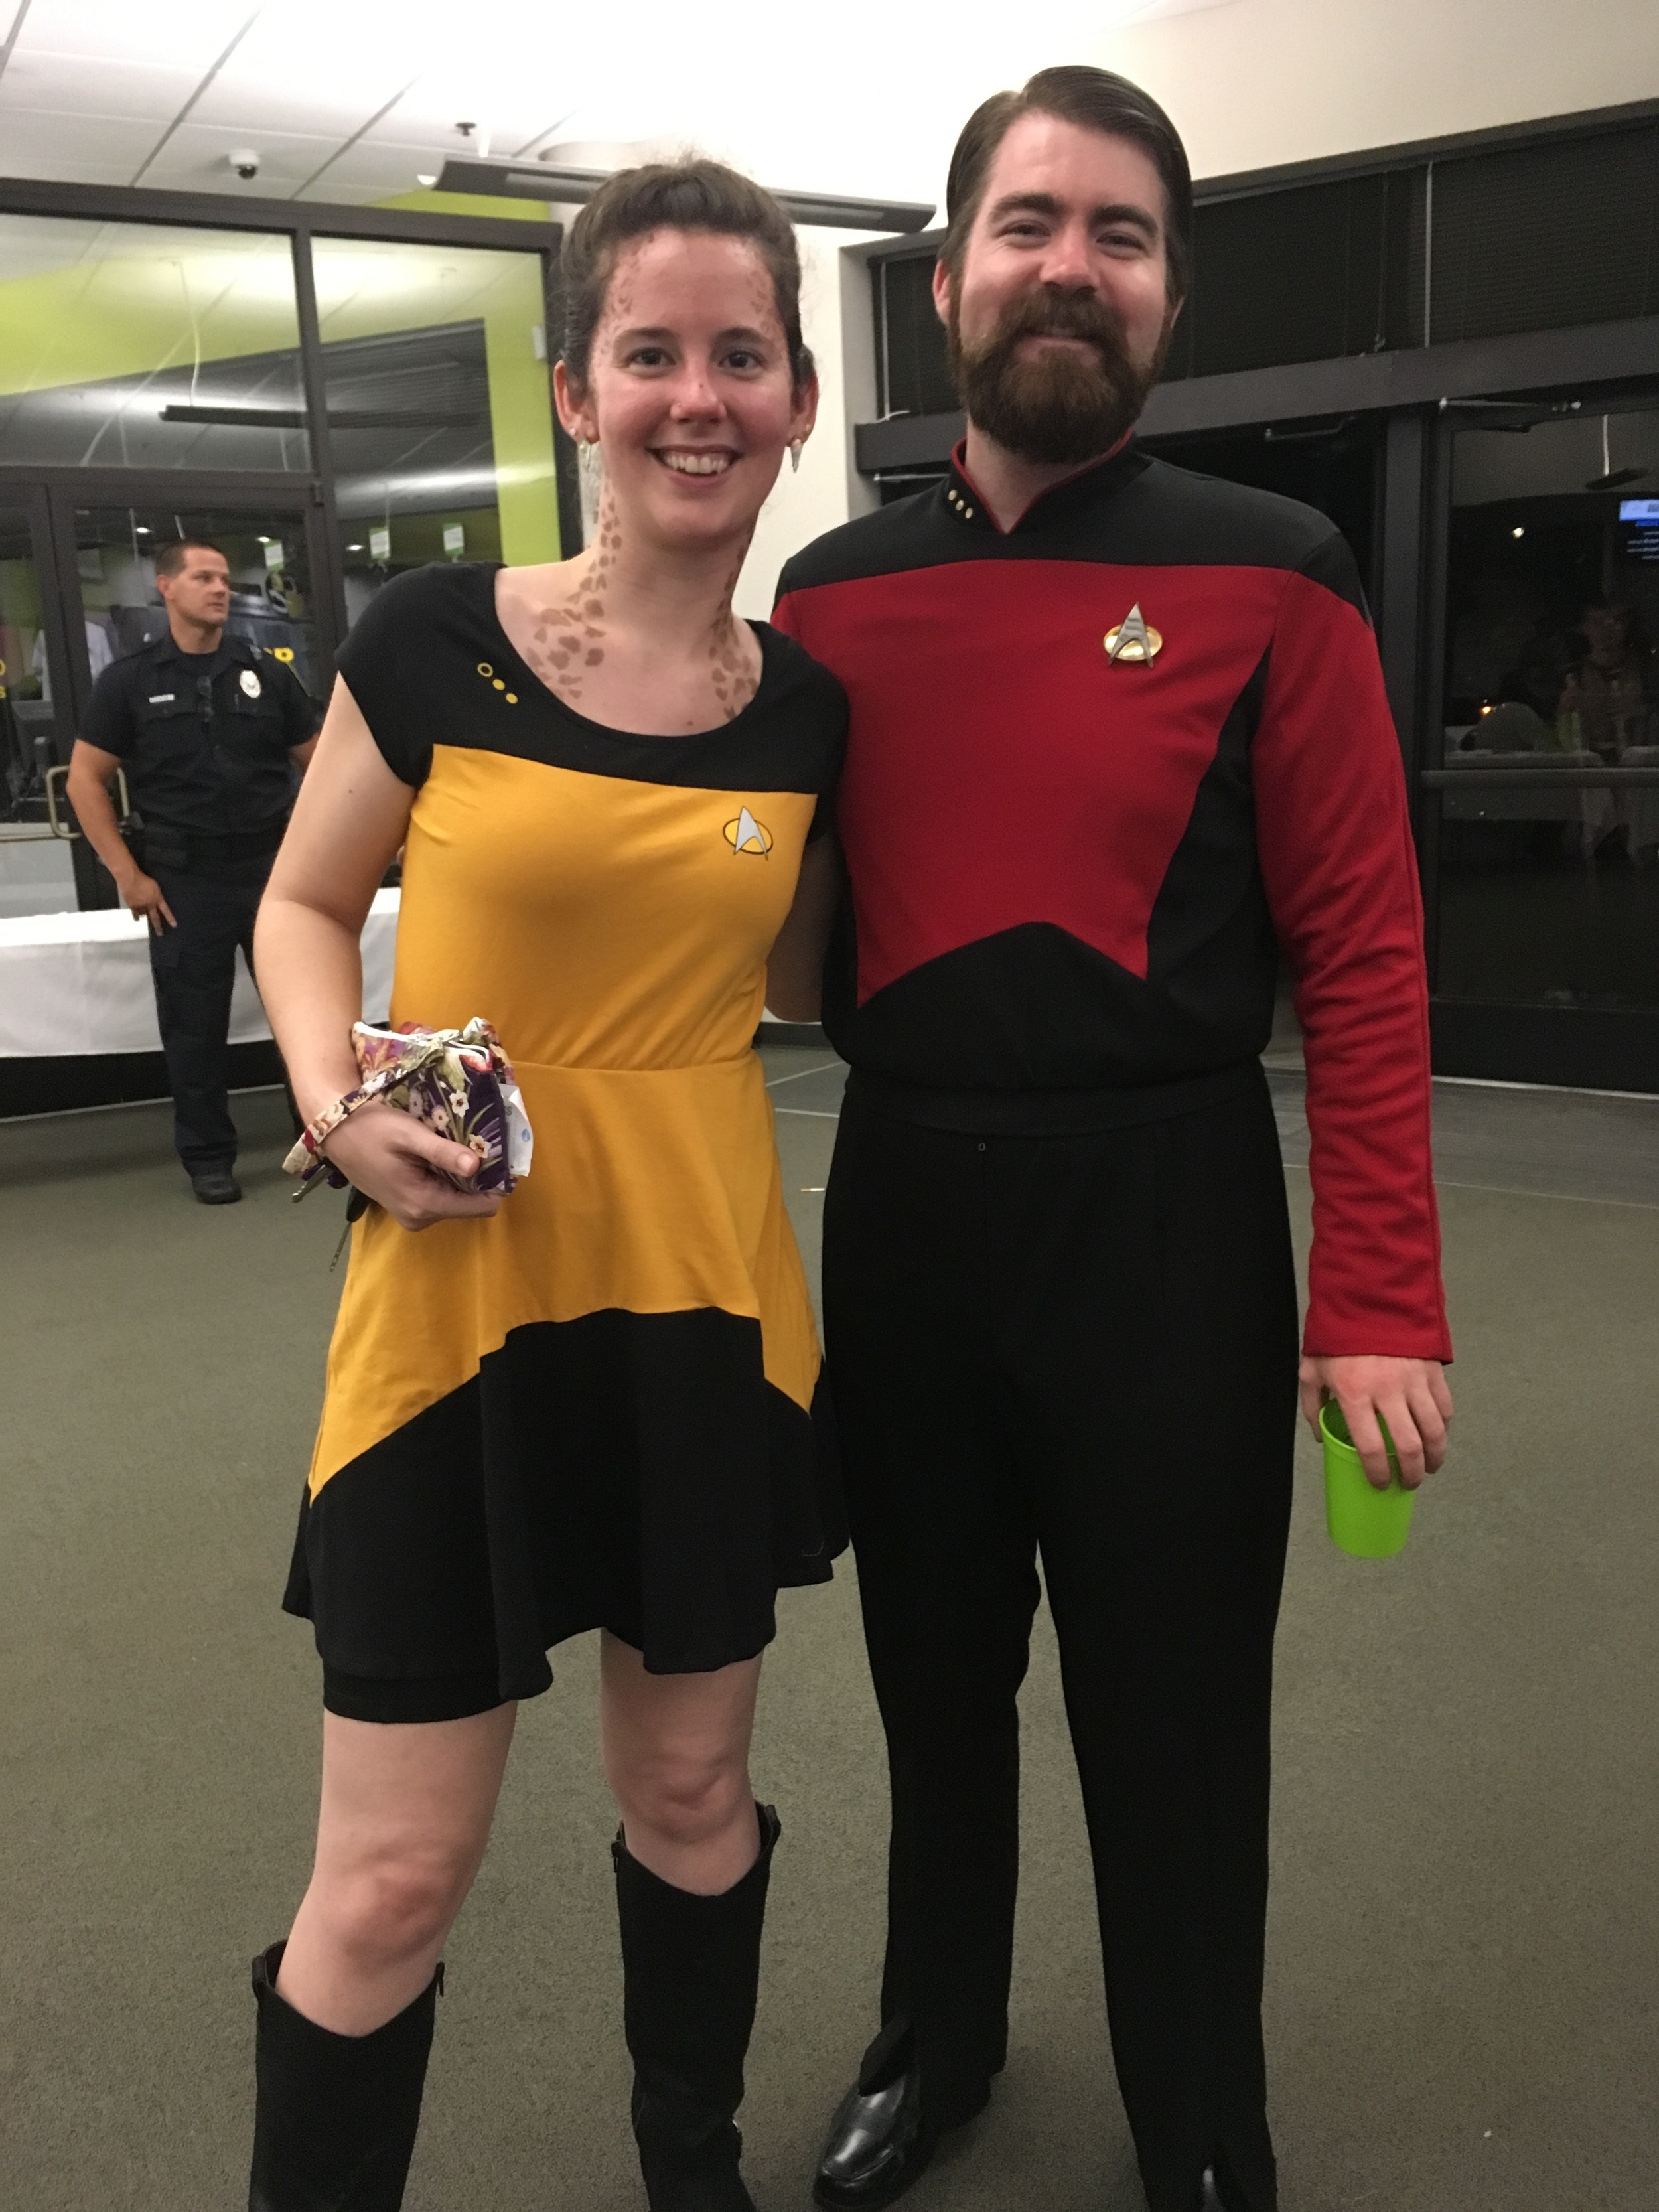 No big deal, just hanging out with Riker. :-D Of course I had to get a picture with him. That's what you  do  at these sort of events.